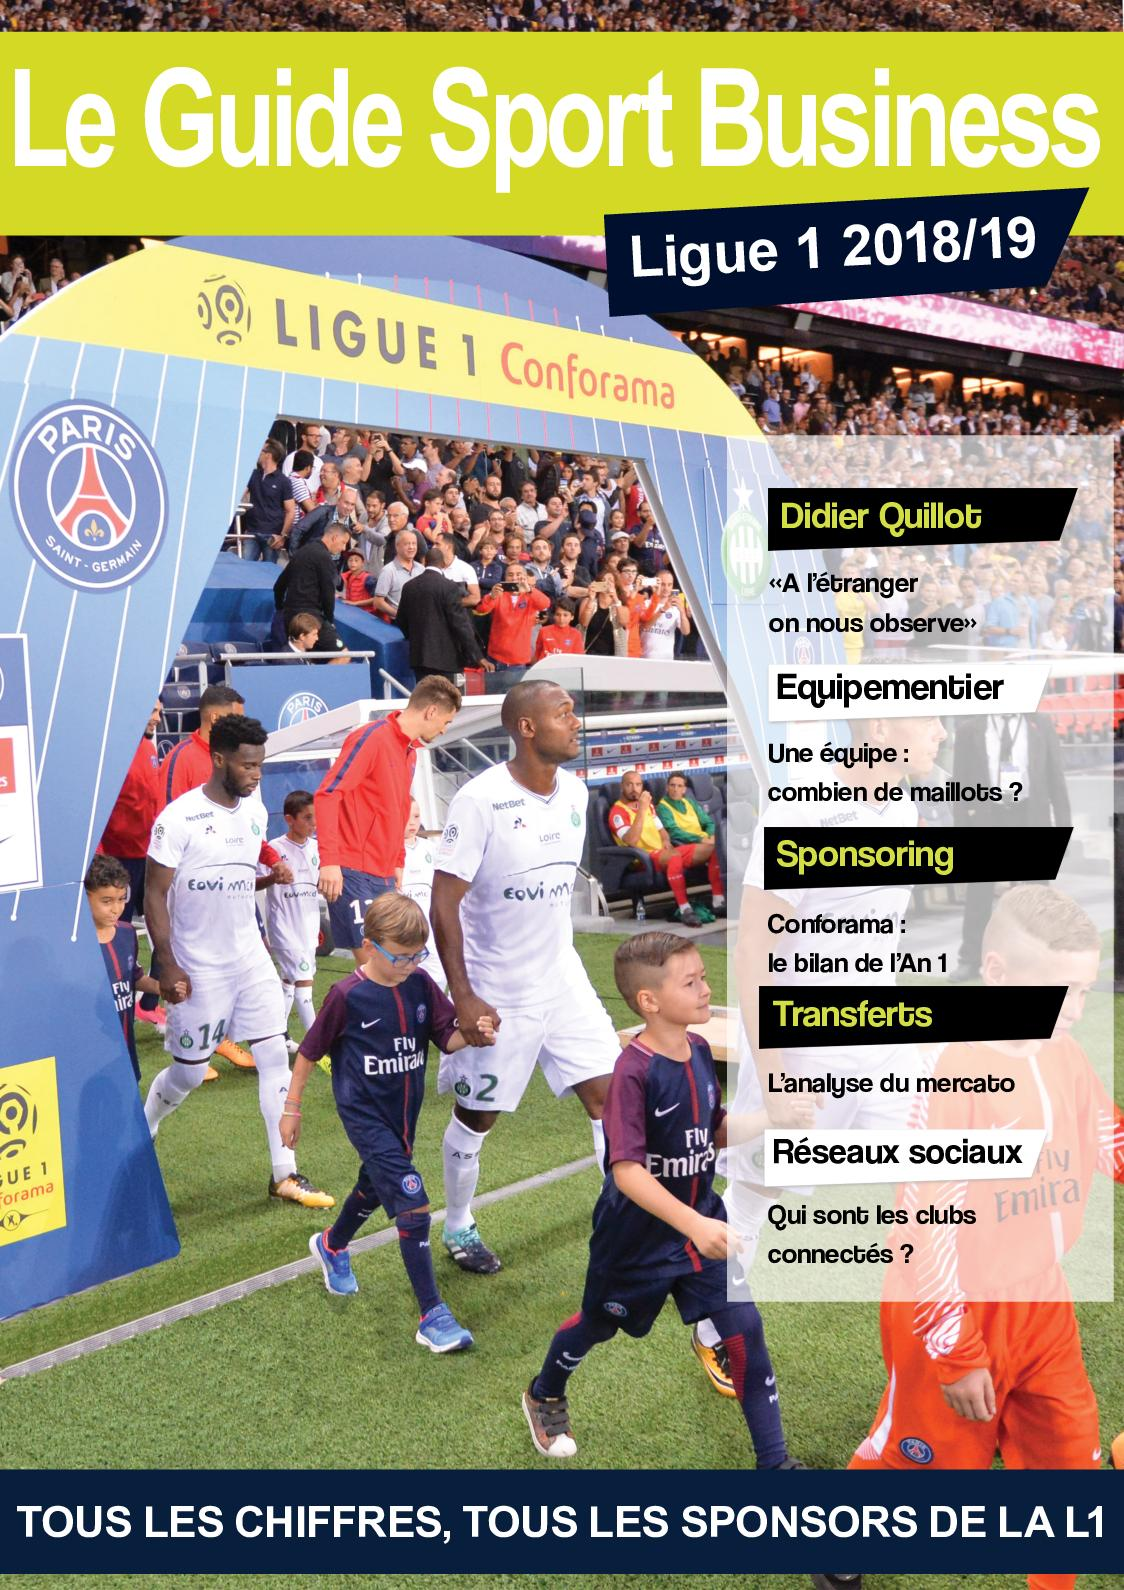 Sport 1 Le 201819 Guide Calaméo Ligue Business cj3Rq4AL5